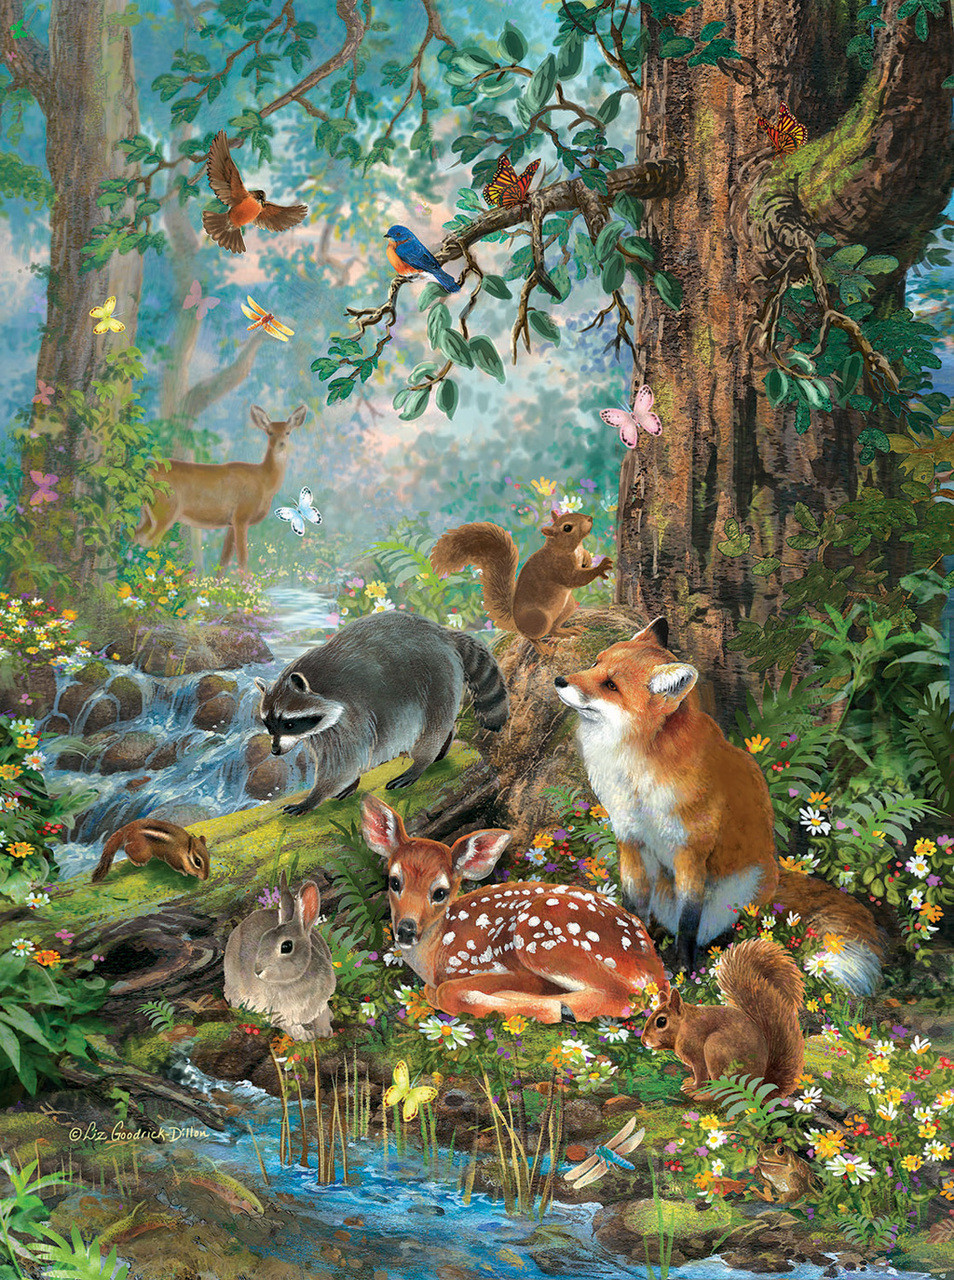 Animal Crossing Wild World Wallpaper Out In The Forest 1000pc Jigsaw Puzzle By Sunsout